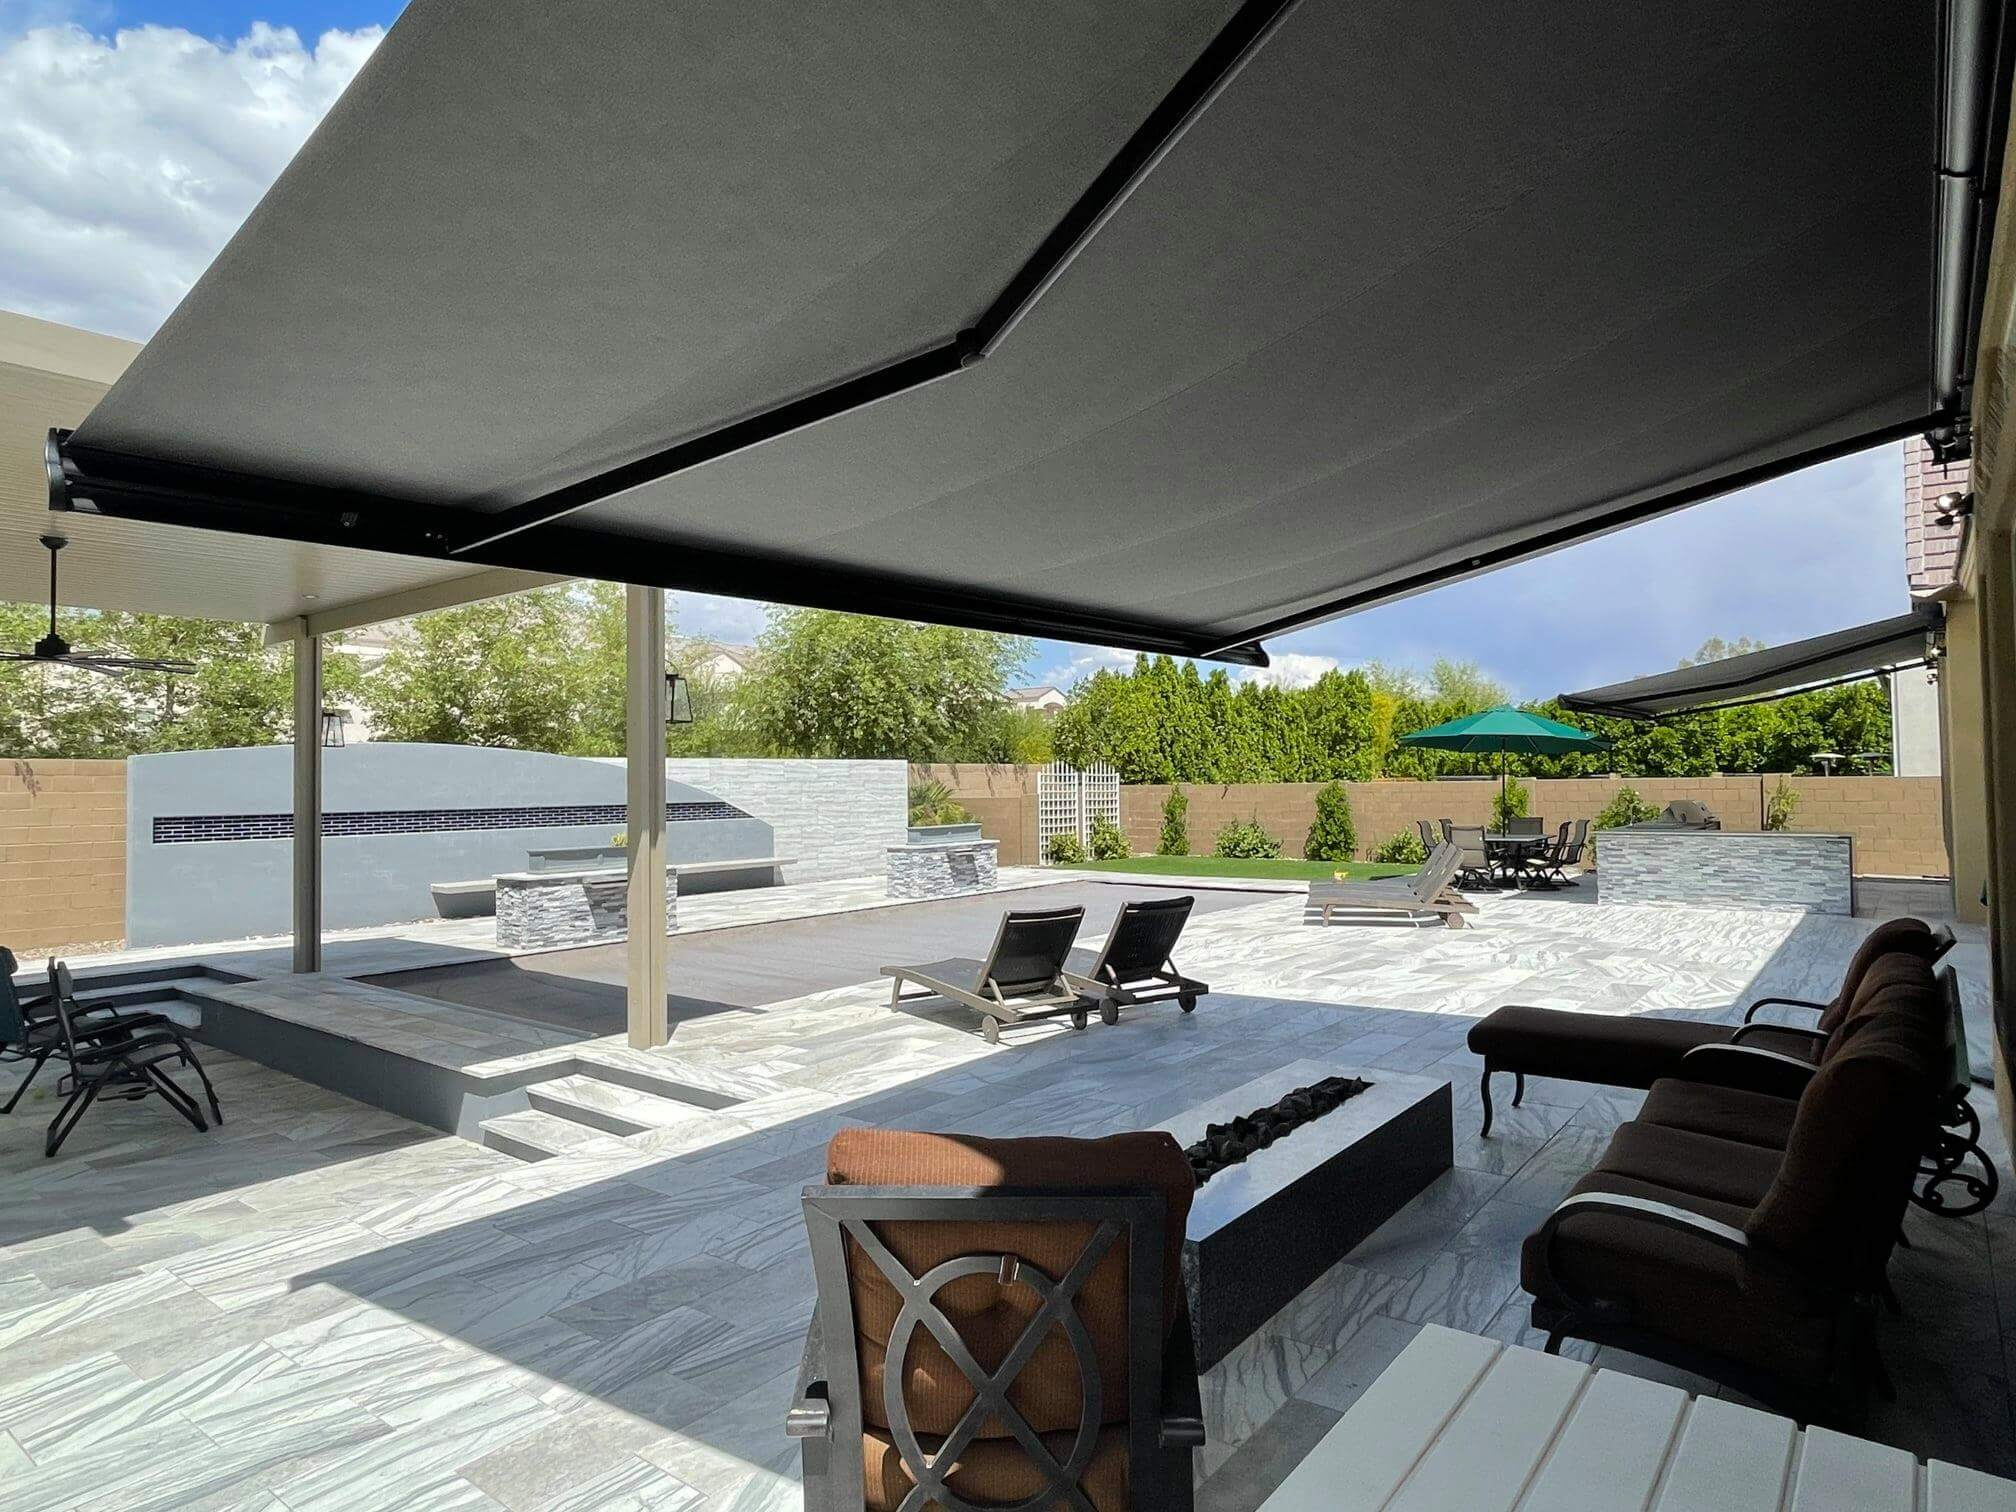 Eclipse Premier Motorized Retractable Awning